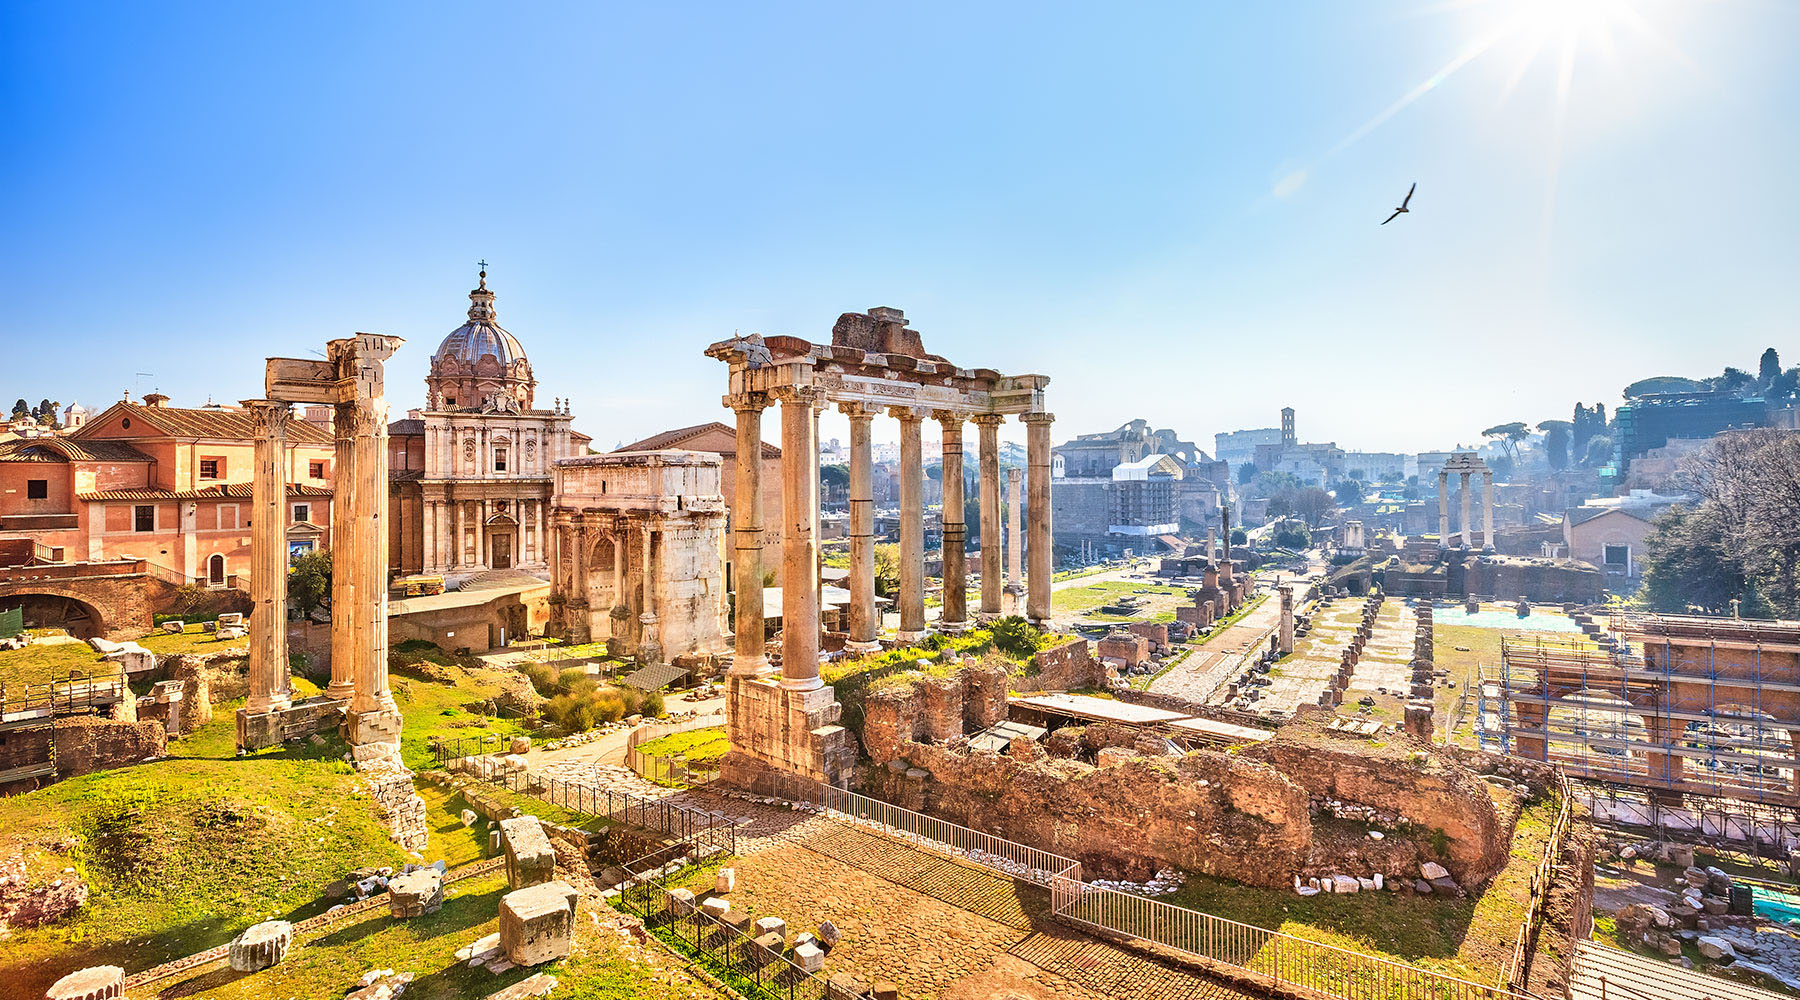 12-NIGHT ITALY INTENSIVE VOYAGE